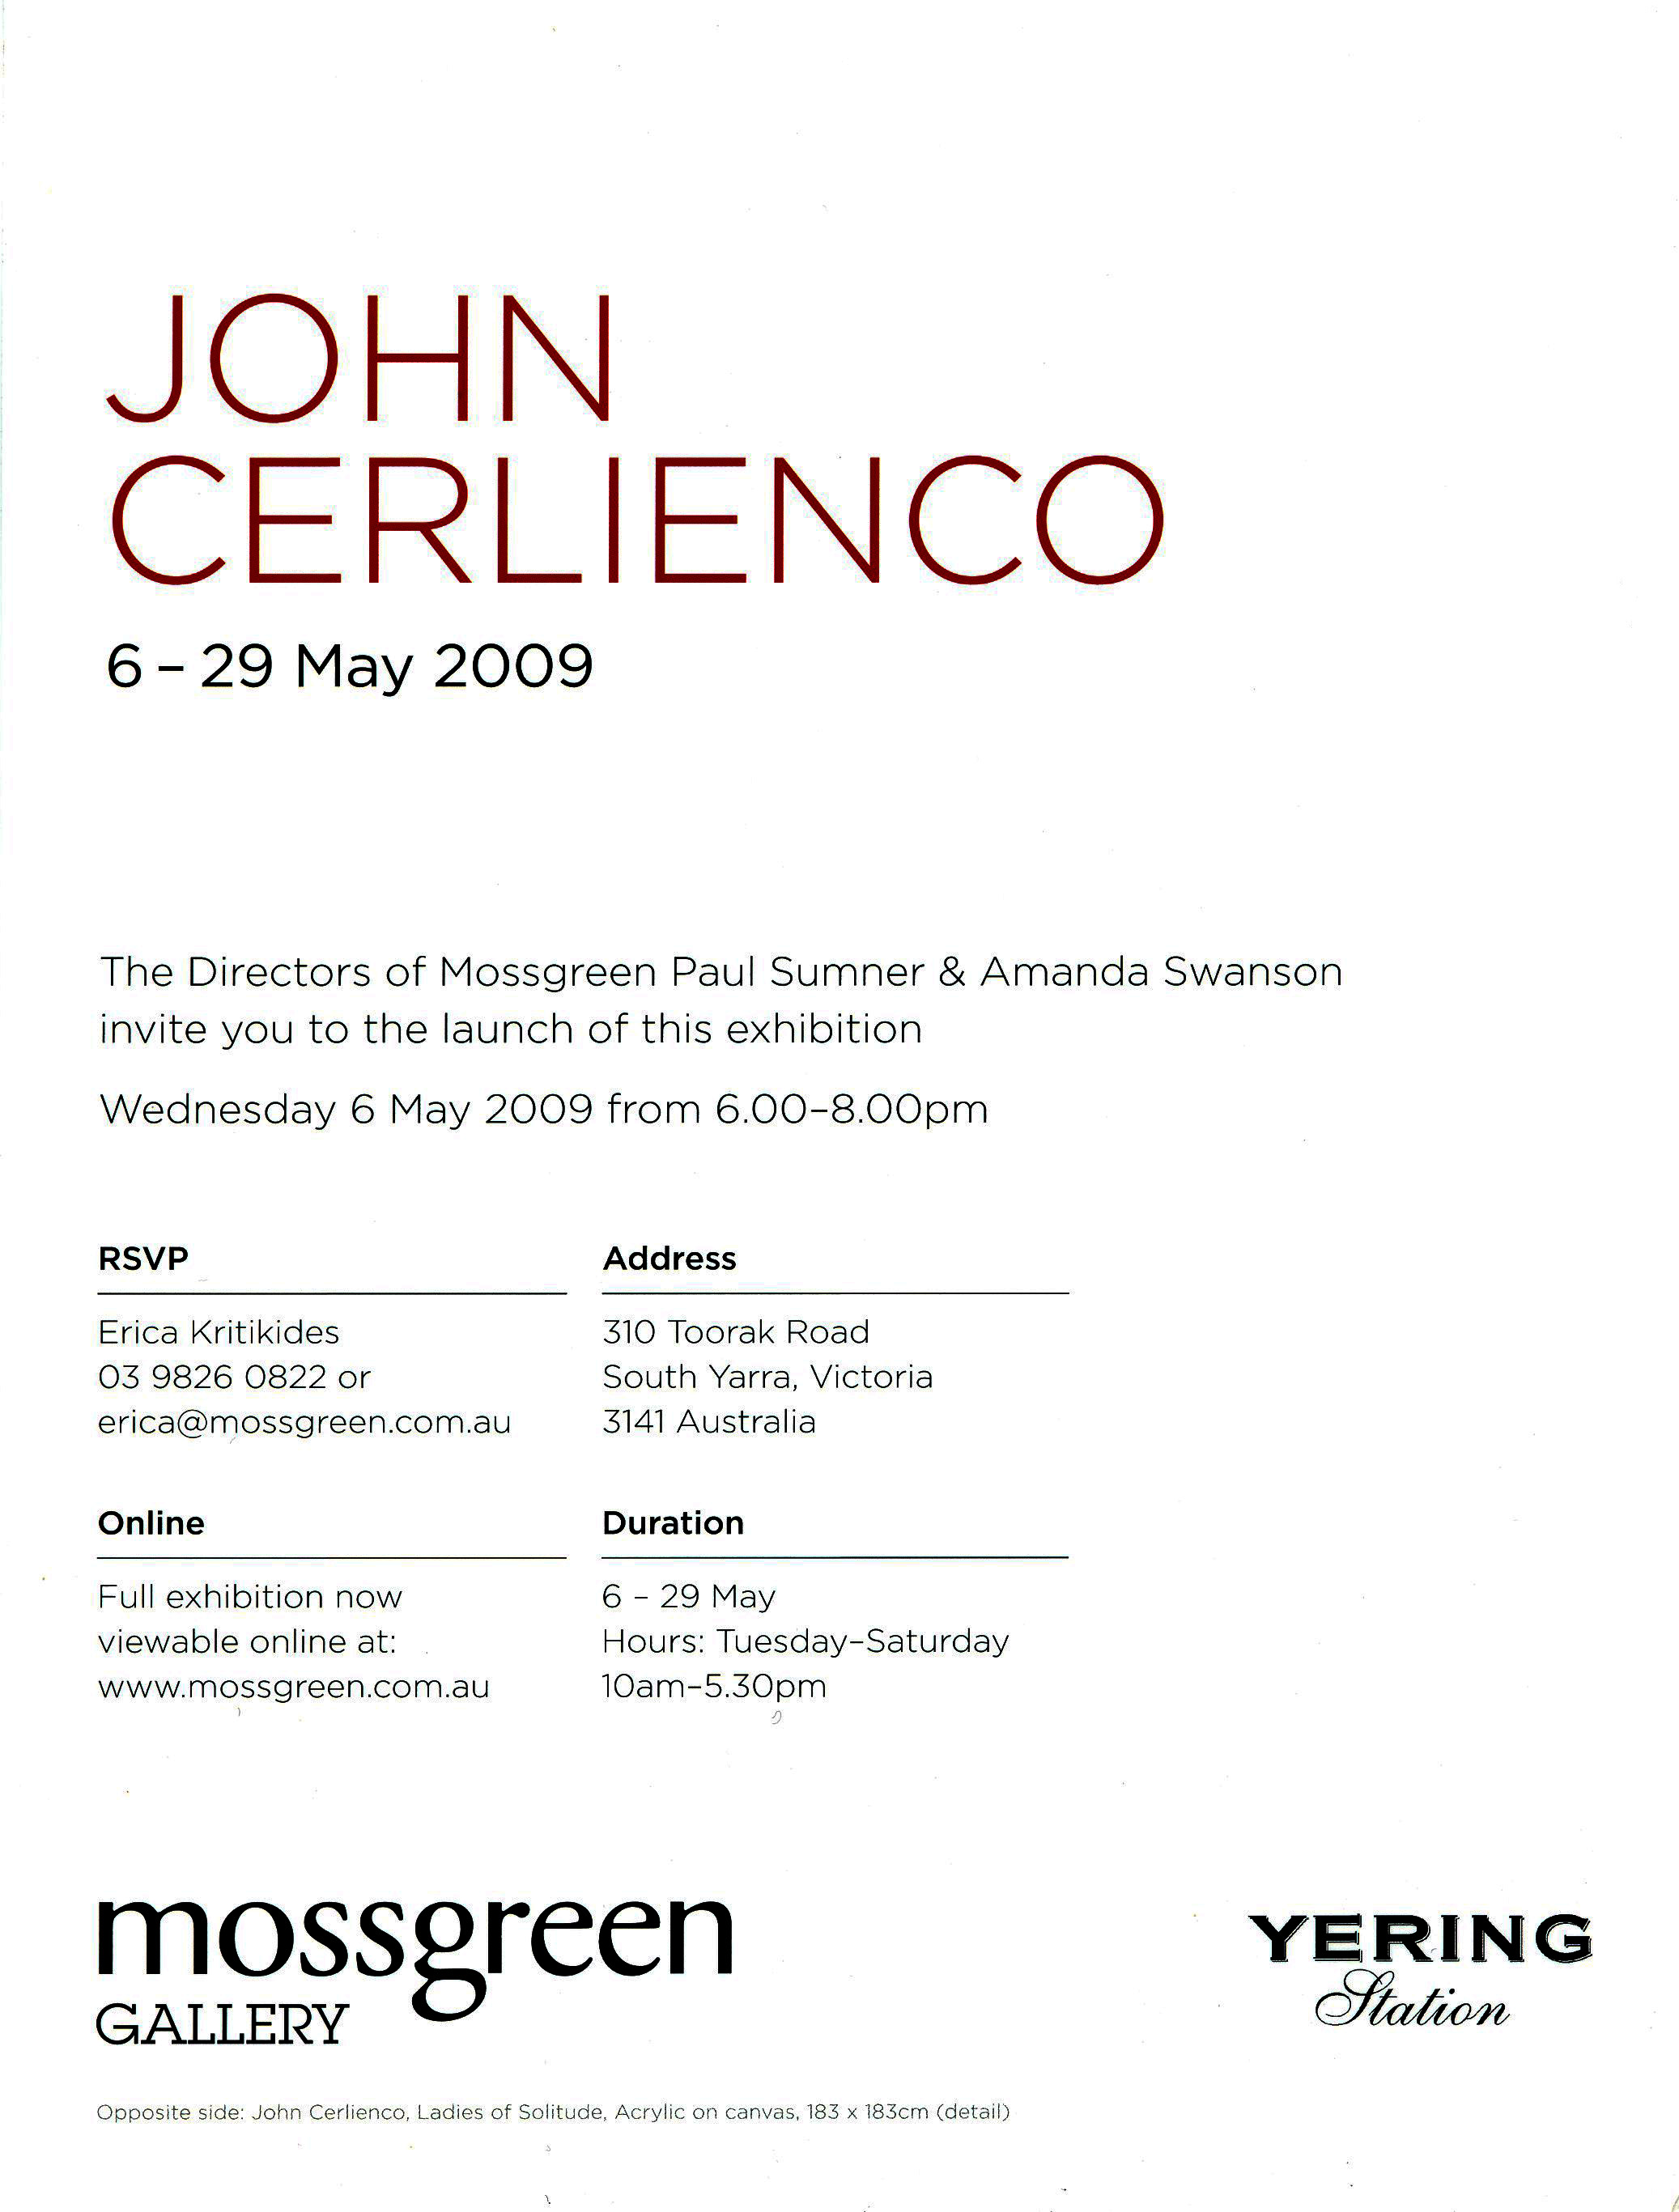 Catalogue inner page for John Cerlienco Exhibition 6-29 March 2009 at Mossgreen